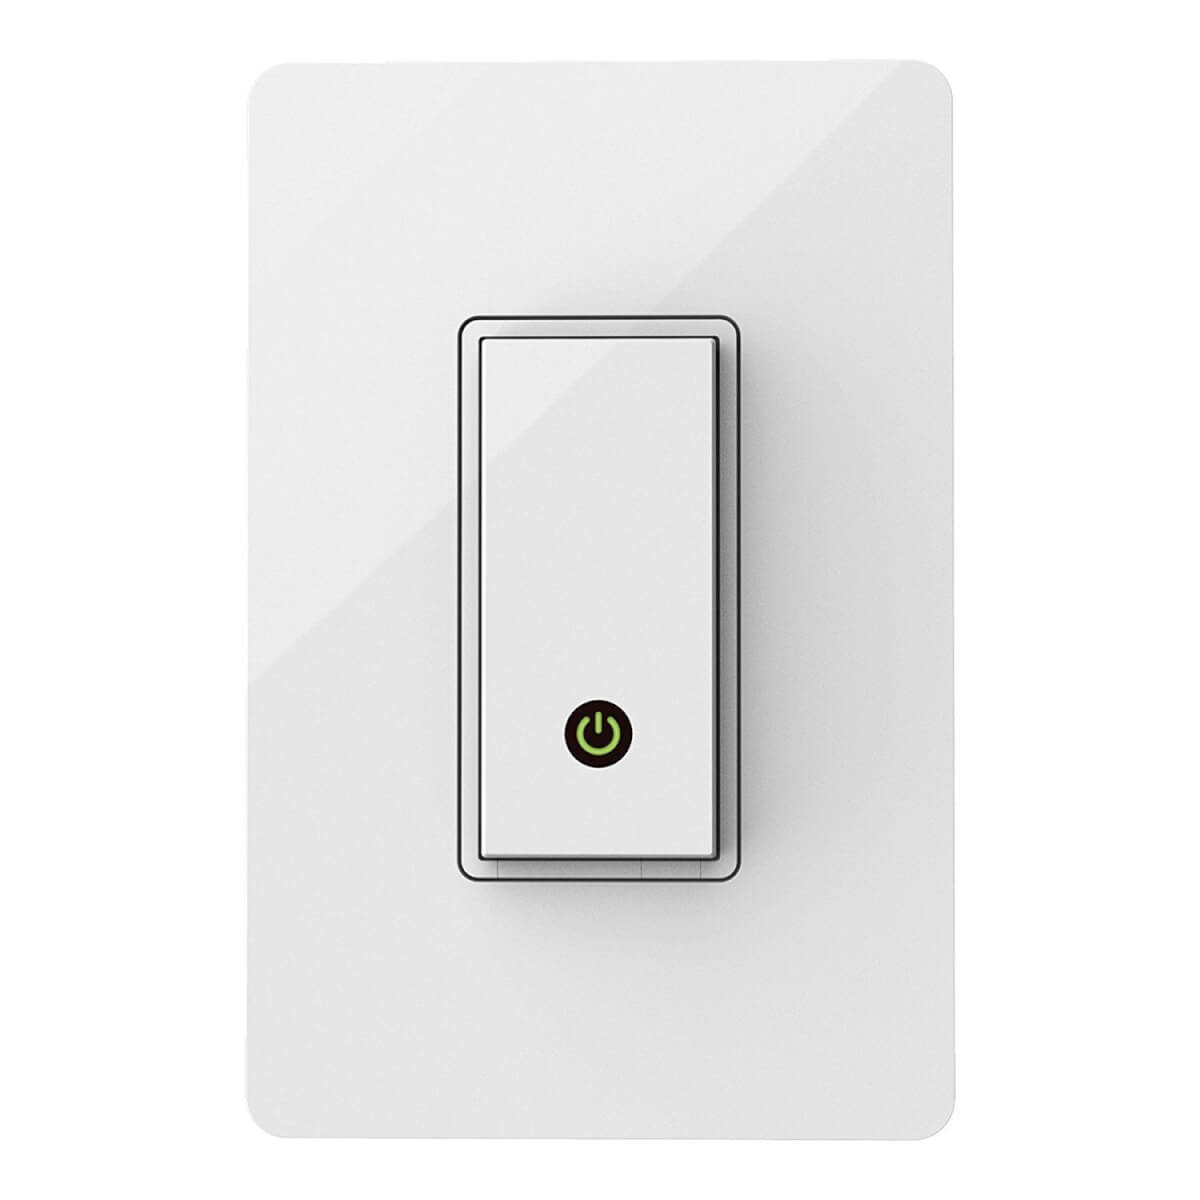 3 Remarkably Easy Solutions For An Automatic Porch Light Timer Way Switch Besides Using The Wemo App To Schedule Your Lights Also Works With Alexa And Google Assistant Turn On Or Off Voice